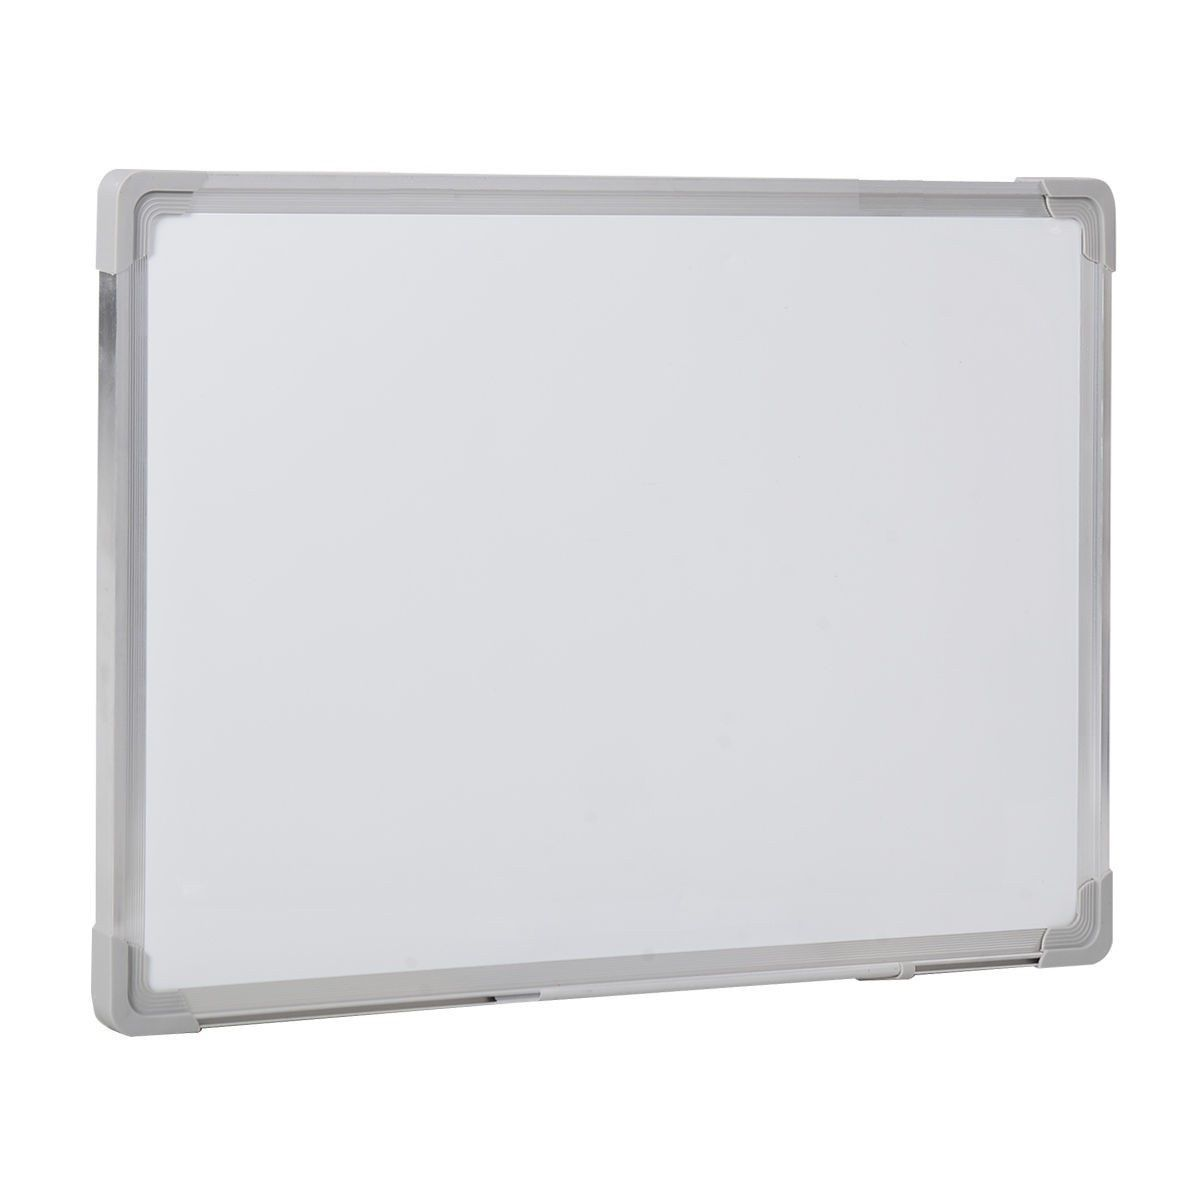 Magnet Whiteboard Wall Hanging Magnetic Board Office Magnetic Dry Erase Wipe